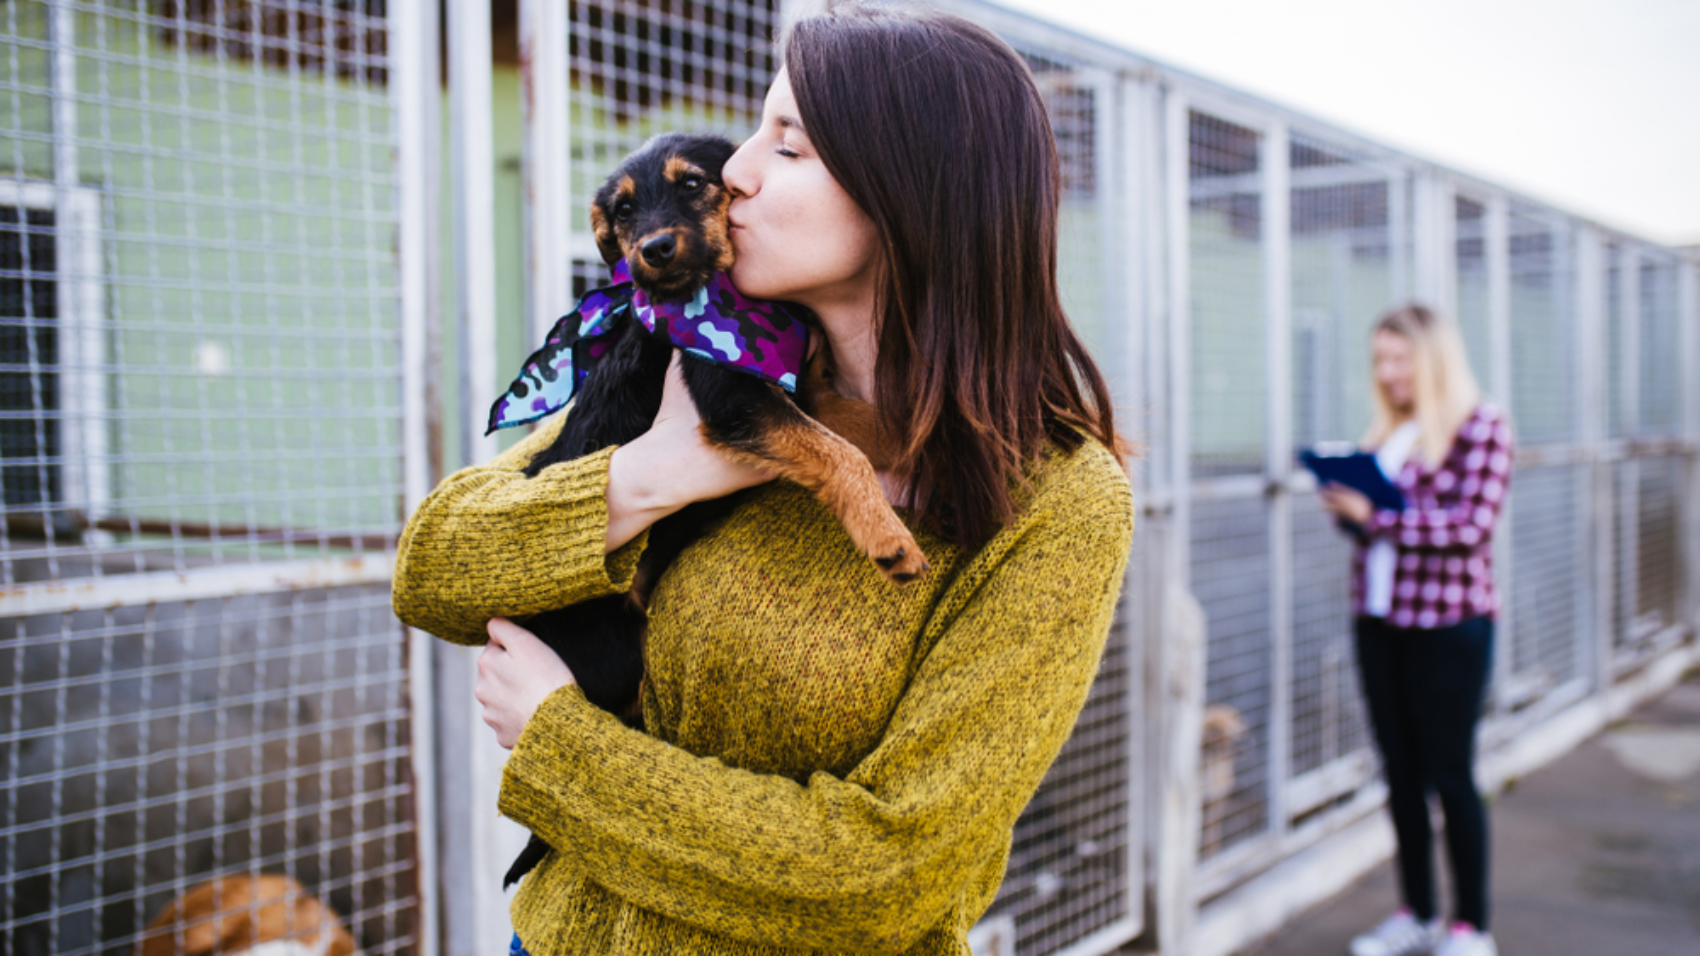 Adopt a Shelter Pet Day Photo 2